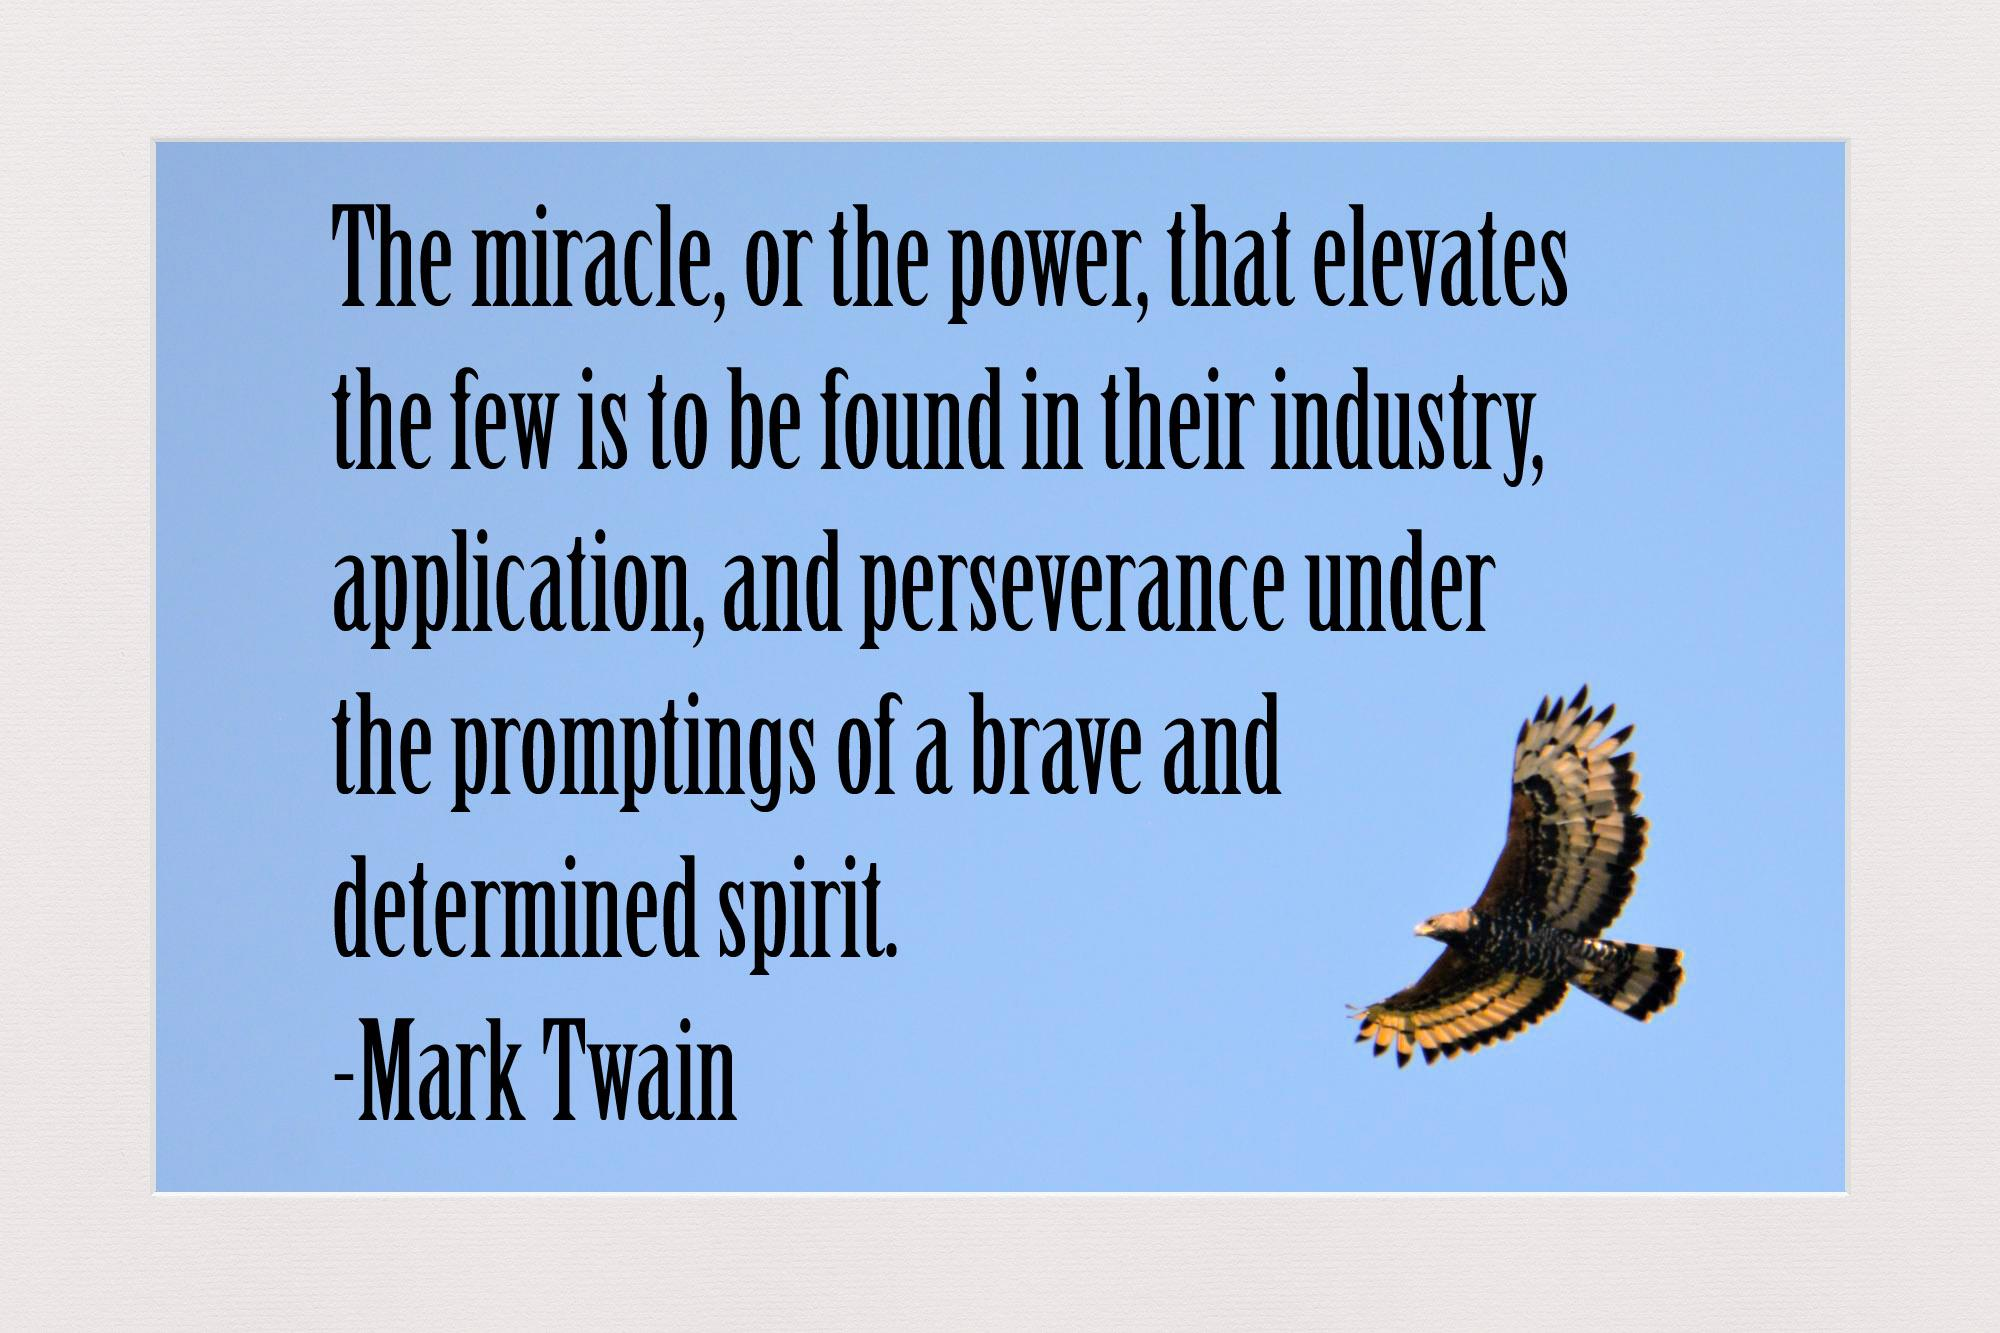 The miracle, or the power, that elevates the few is to be found in their industry, application, and perseverance under the promptings of a brave and determined spirit. —Mark Twain (2000×1333)